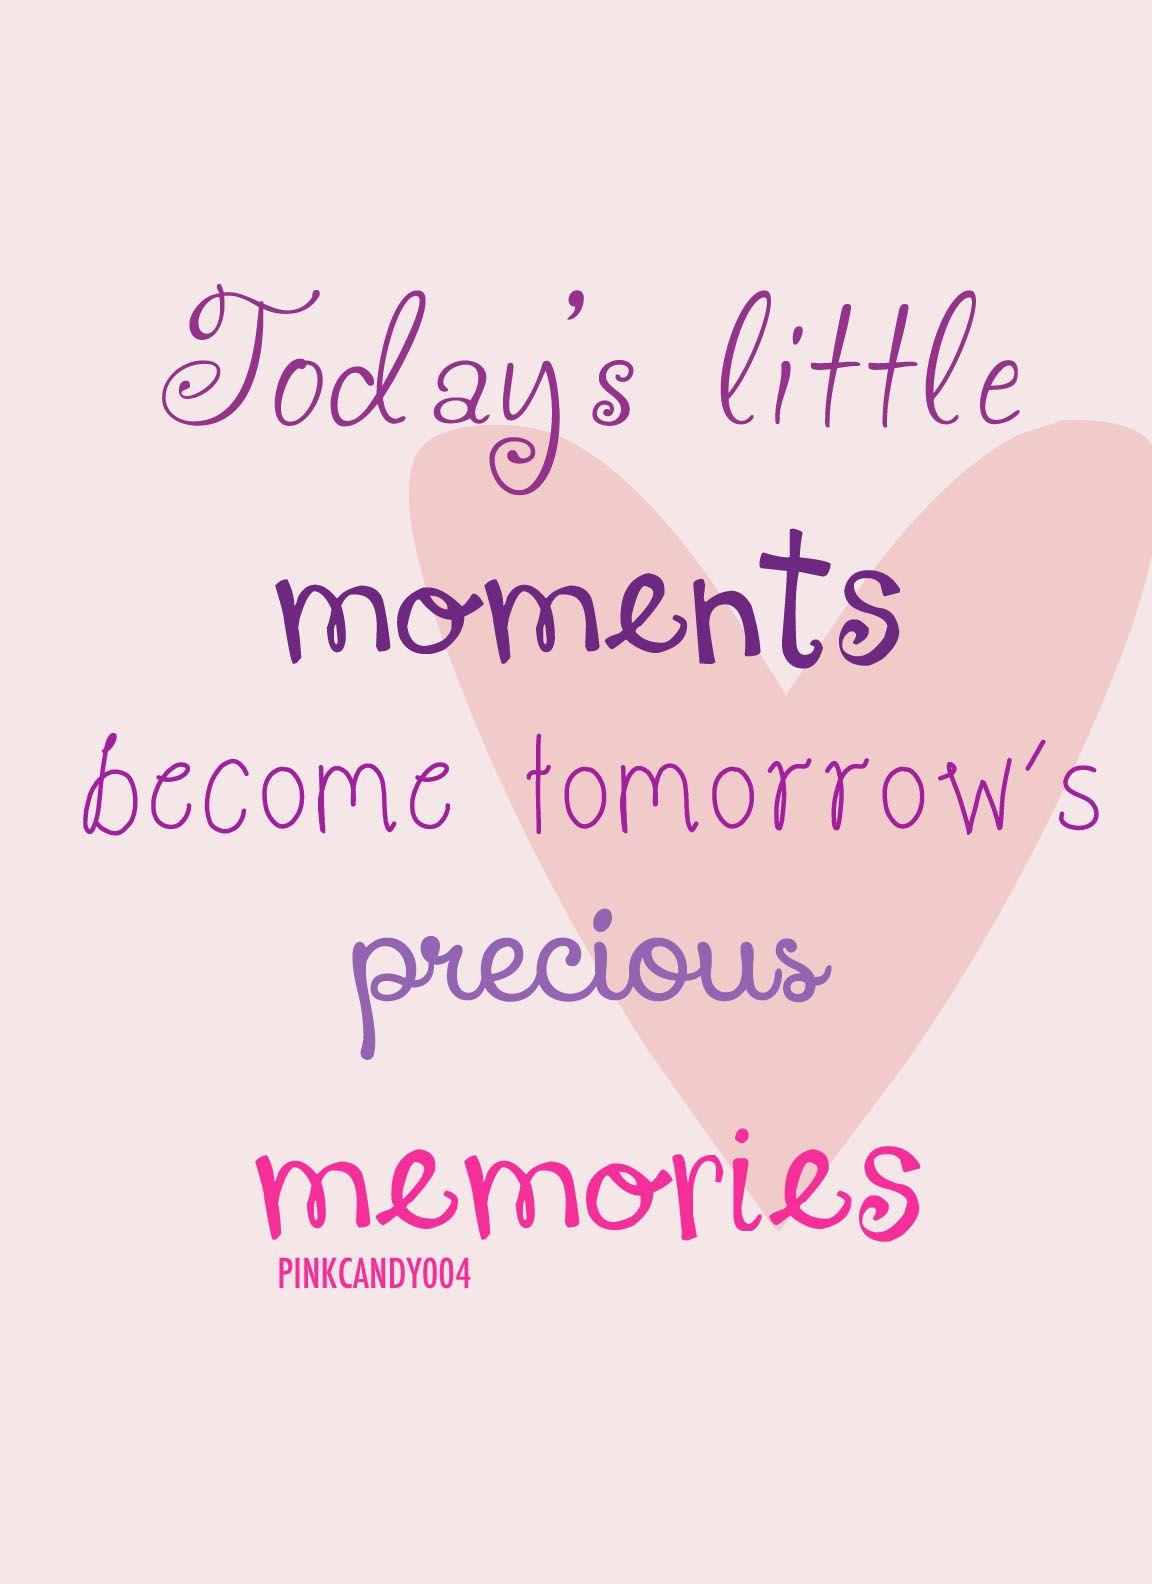 TODAY'S LITTLE MOMENTS BECOME TOMORROW'S PRECIOUS MEMORIES